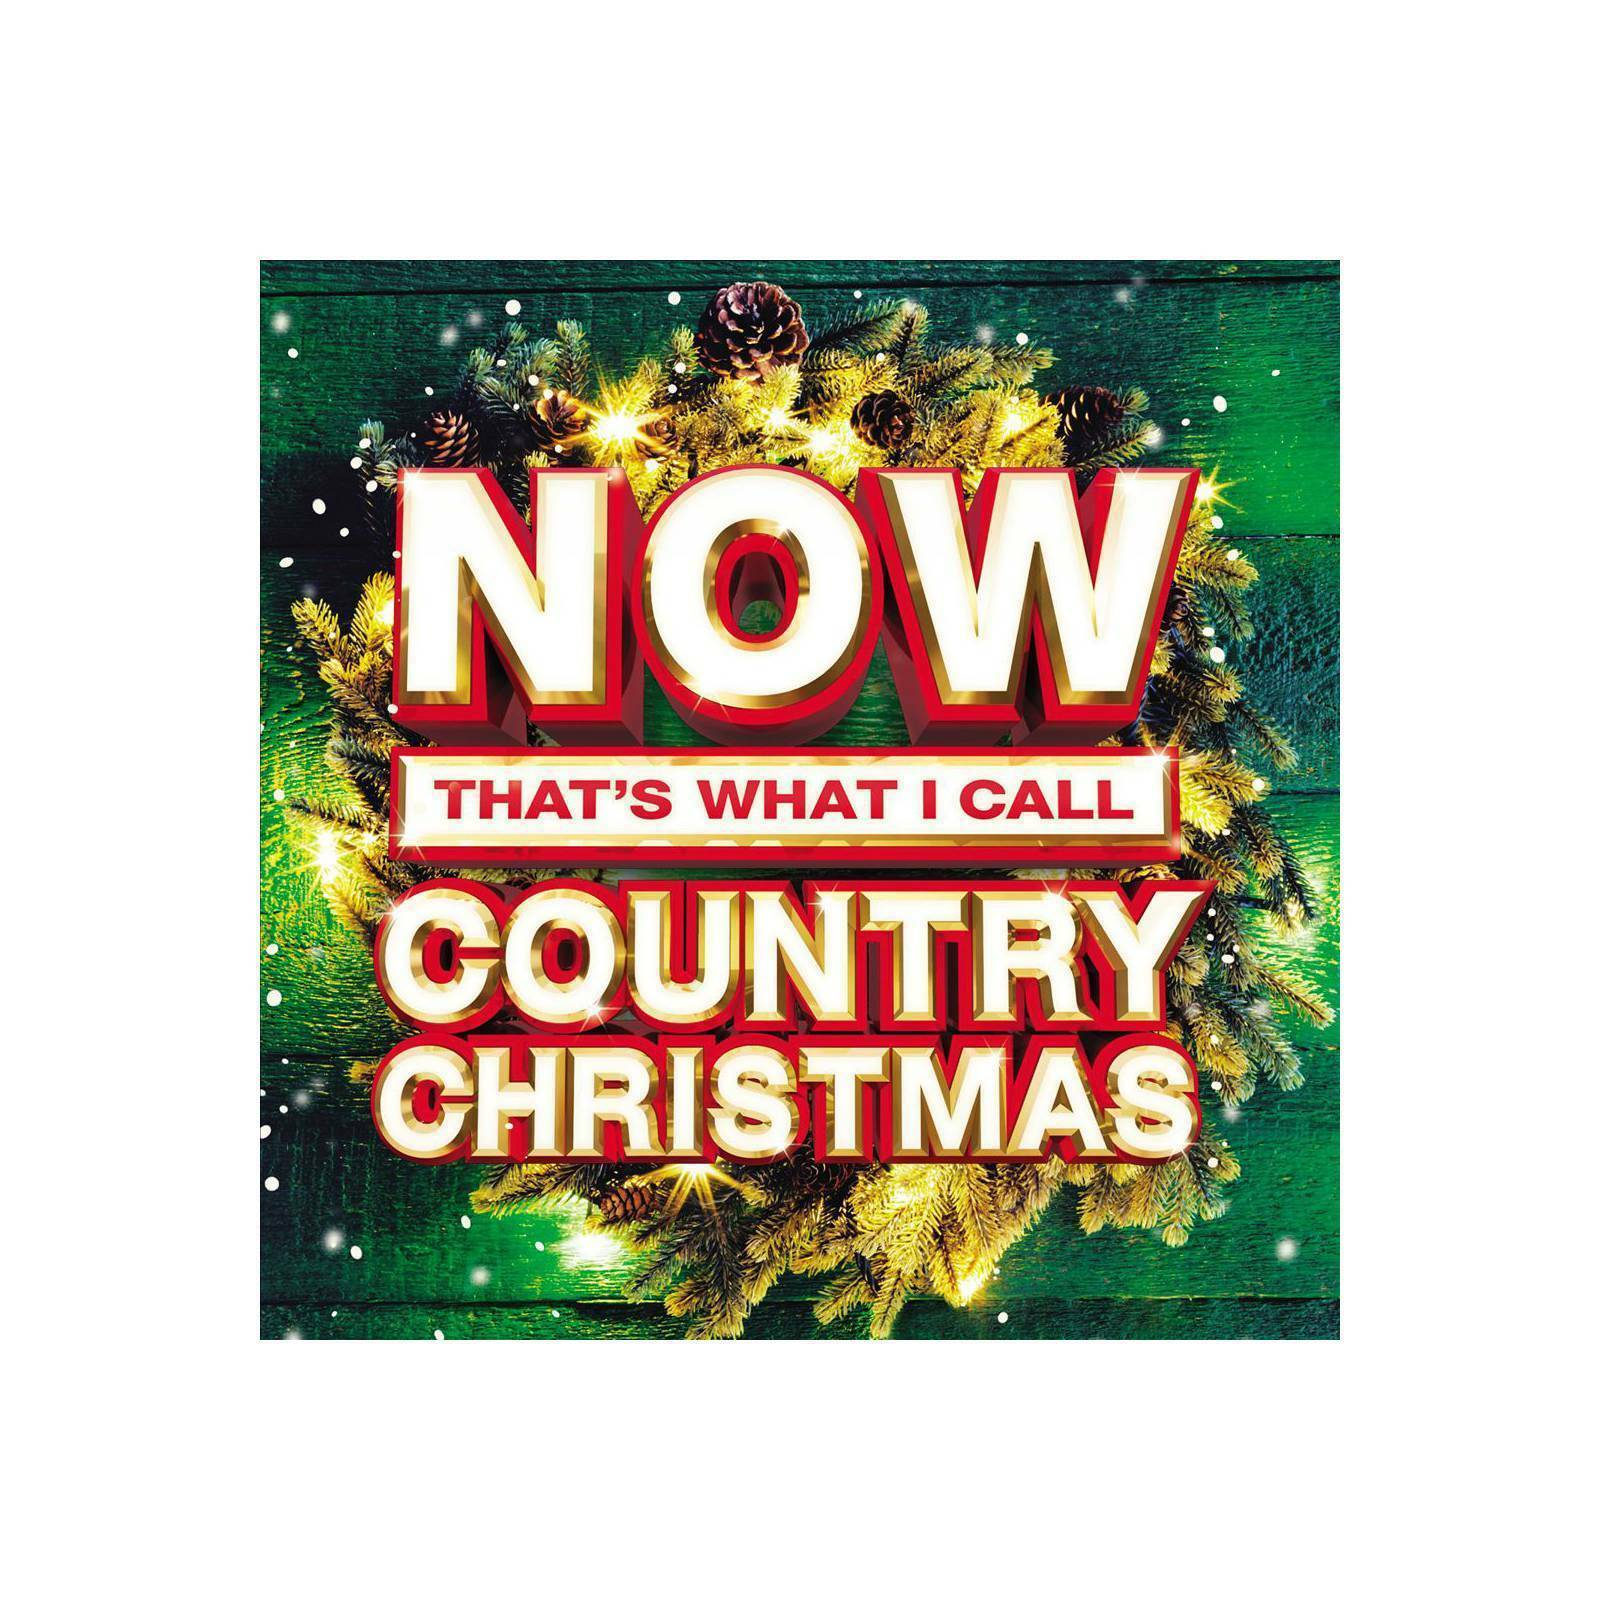 Various Artists - Now Thats What I Call Country Christmas & 2cds | eBay